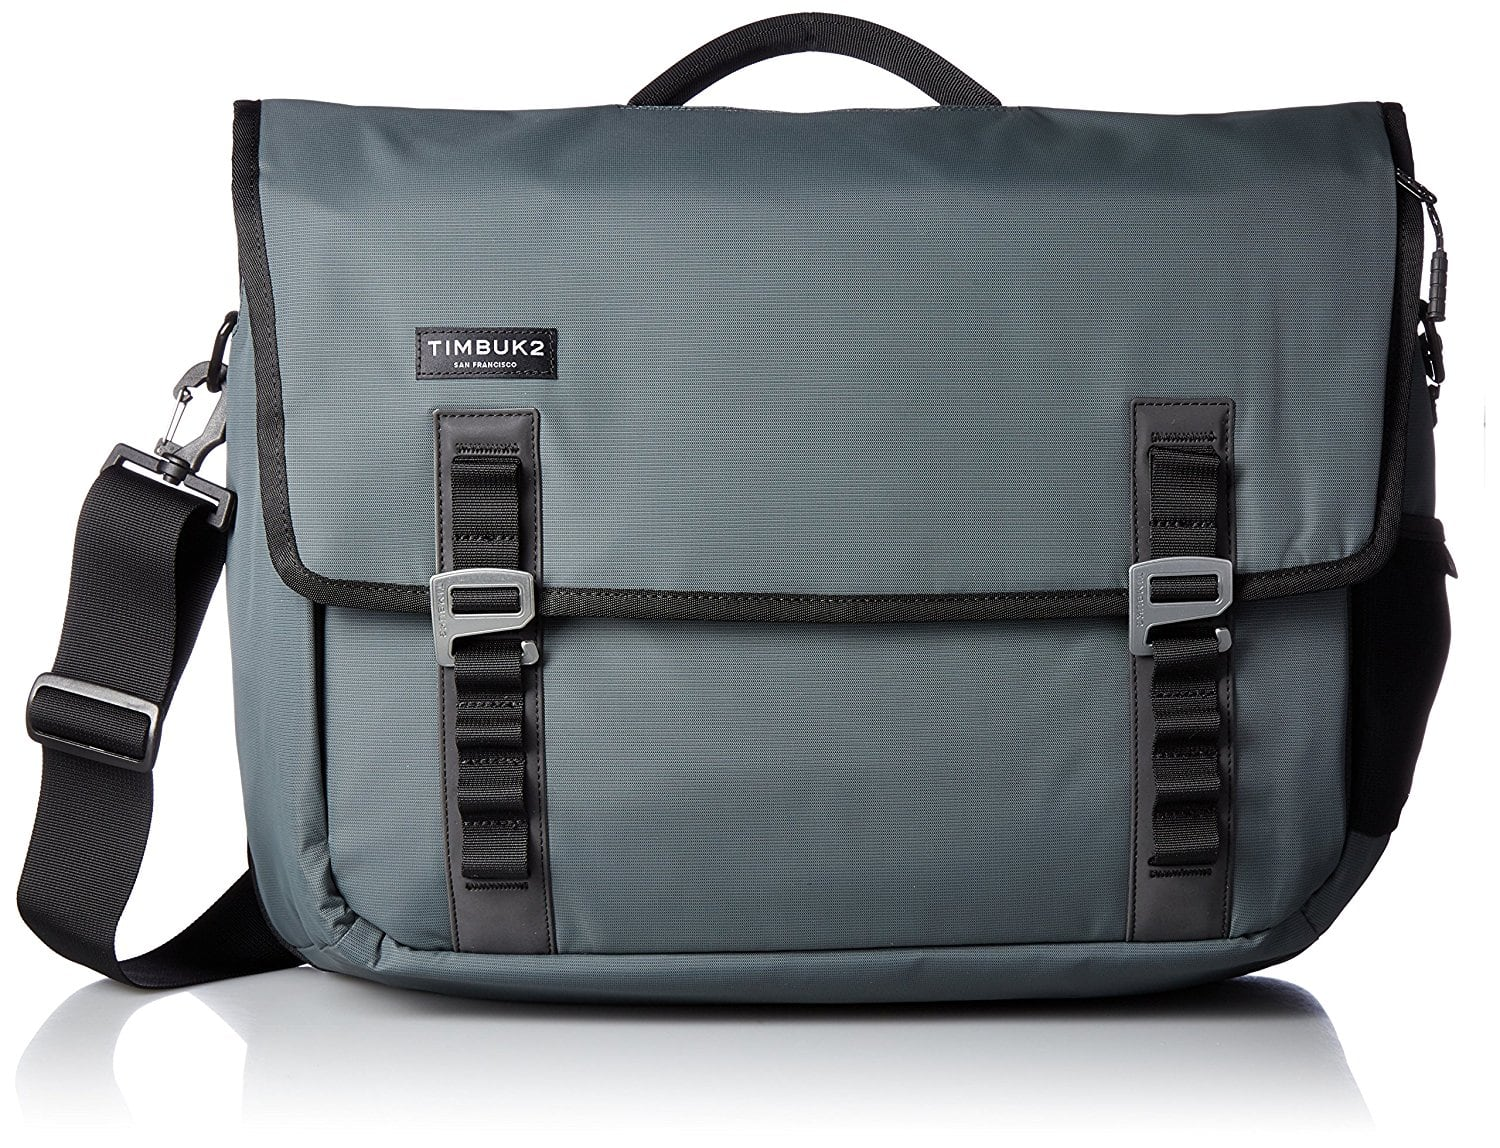 Timbuk2 Command Laptop Messenger Bag $71.90